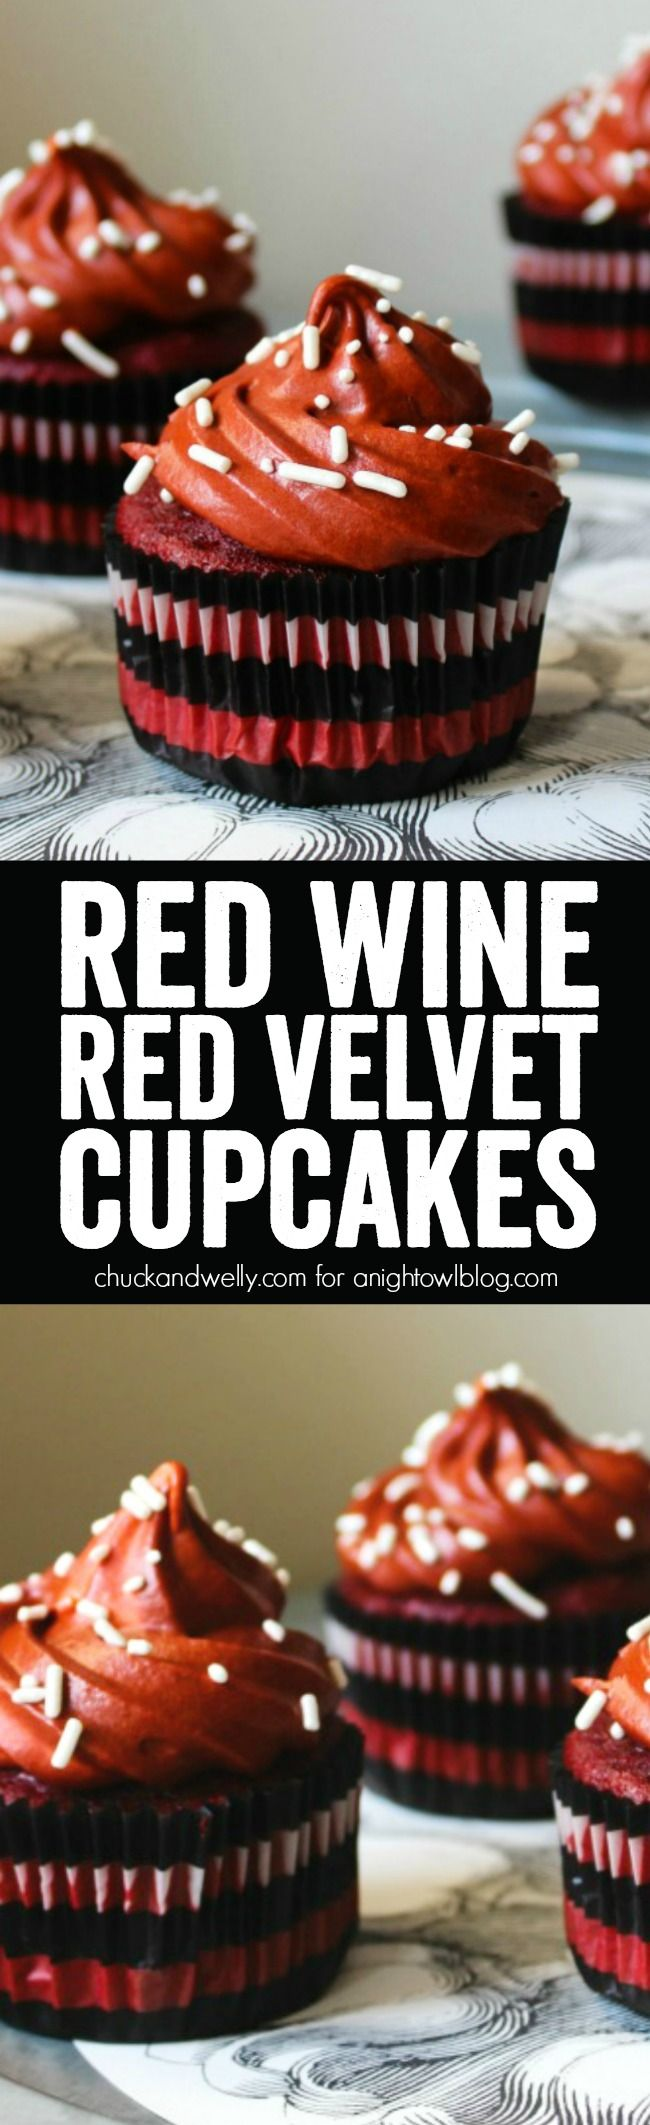 What Wine Pairs Well With Red Velvet Cake